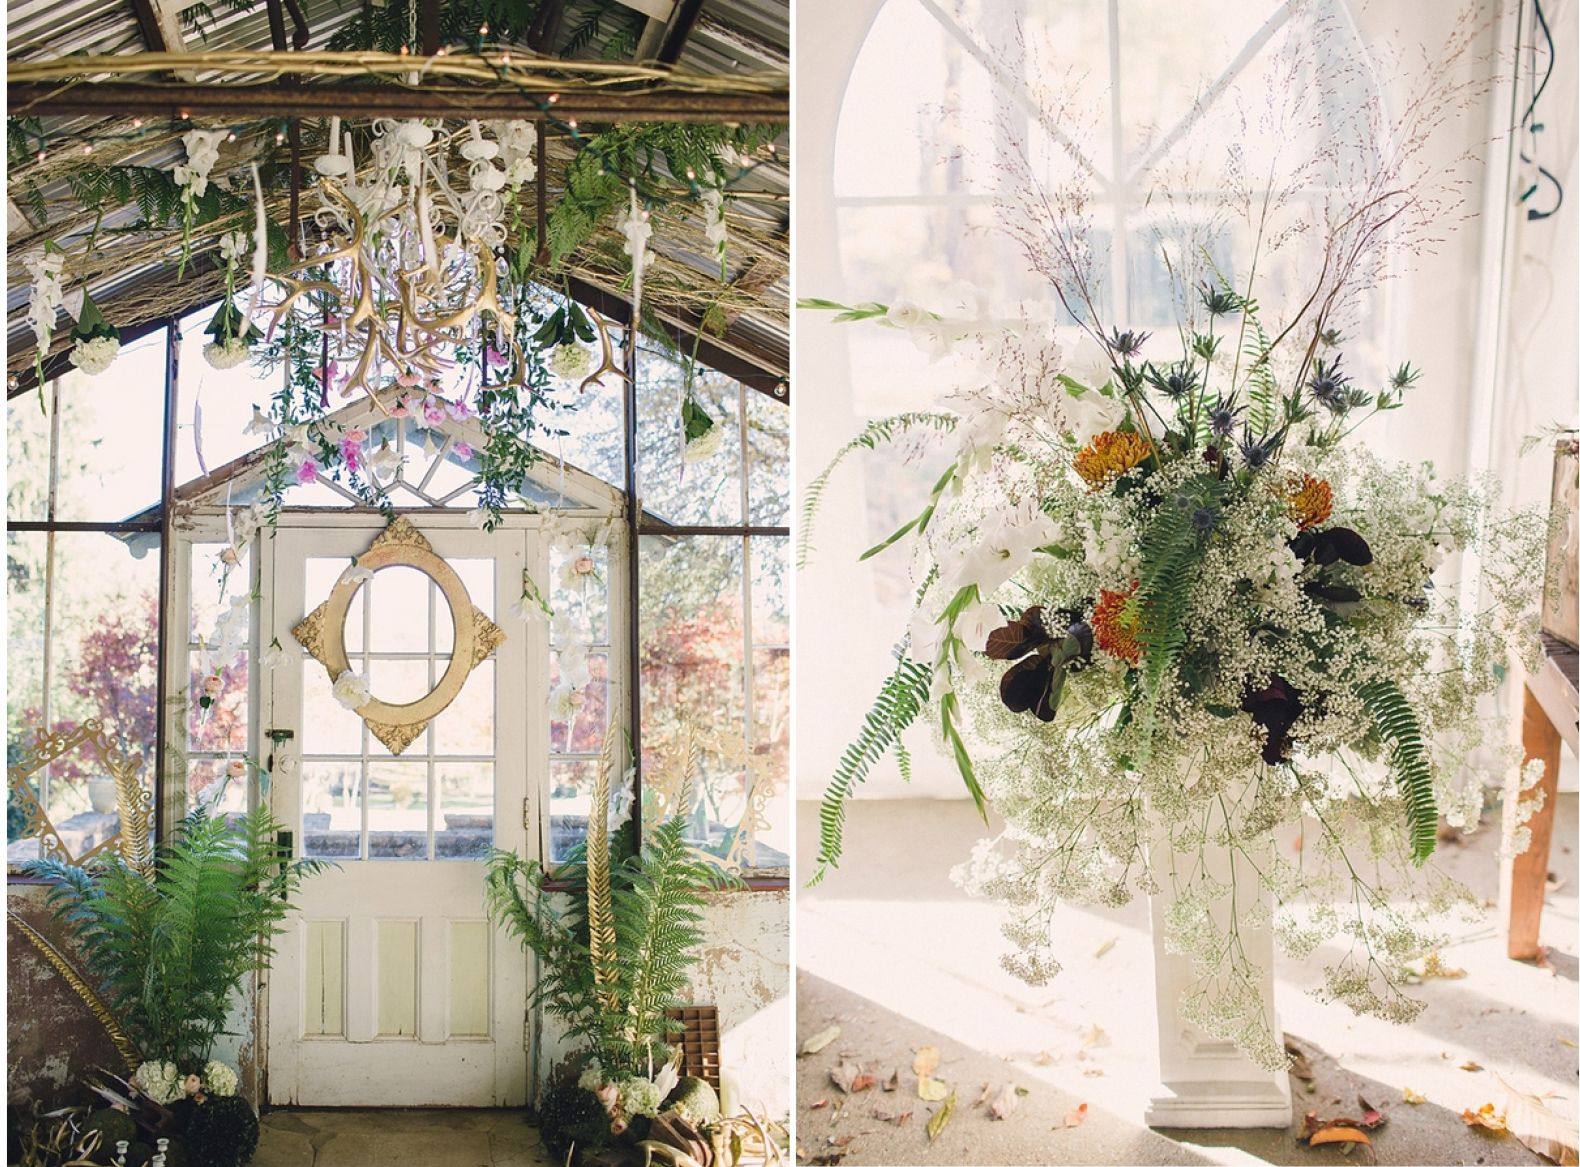 Reporter roundup glorious glasshousegreenhouse venues in the usa venue historic shady lane philadelphia this greenhouseglasshouse venue is a century old property with endless ceremony site options junglespirit Images